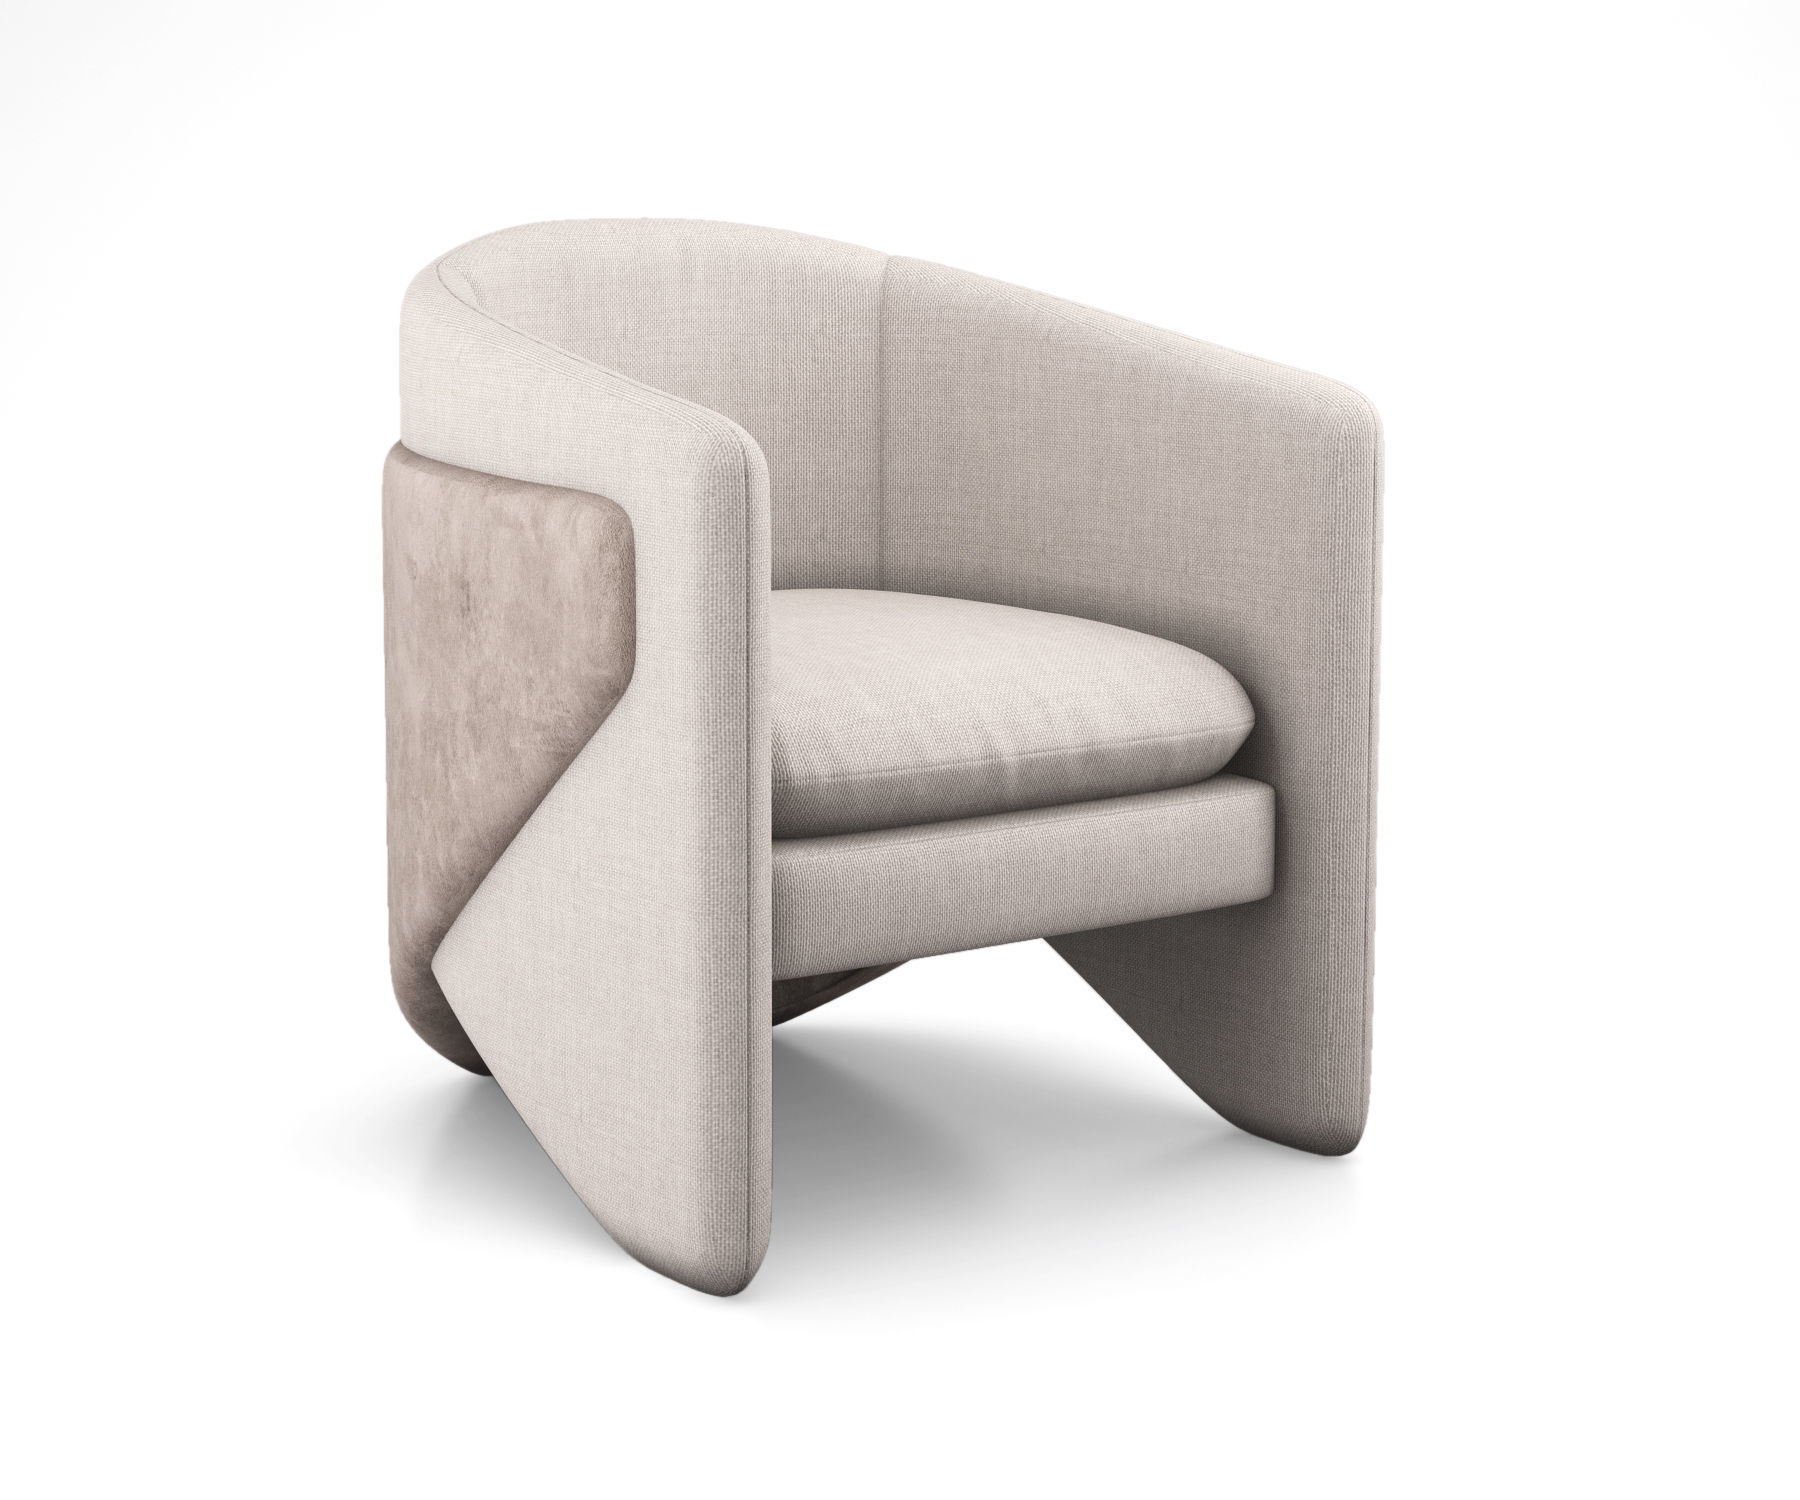 Thea chair by West elm